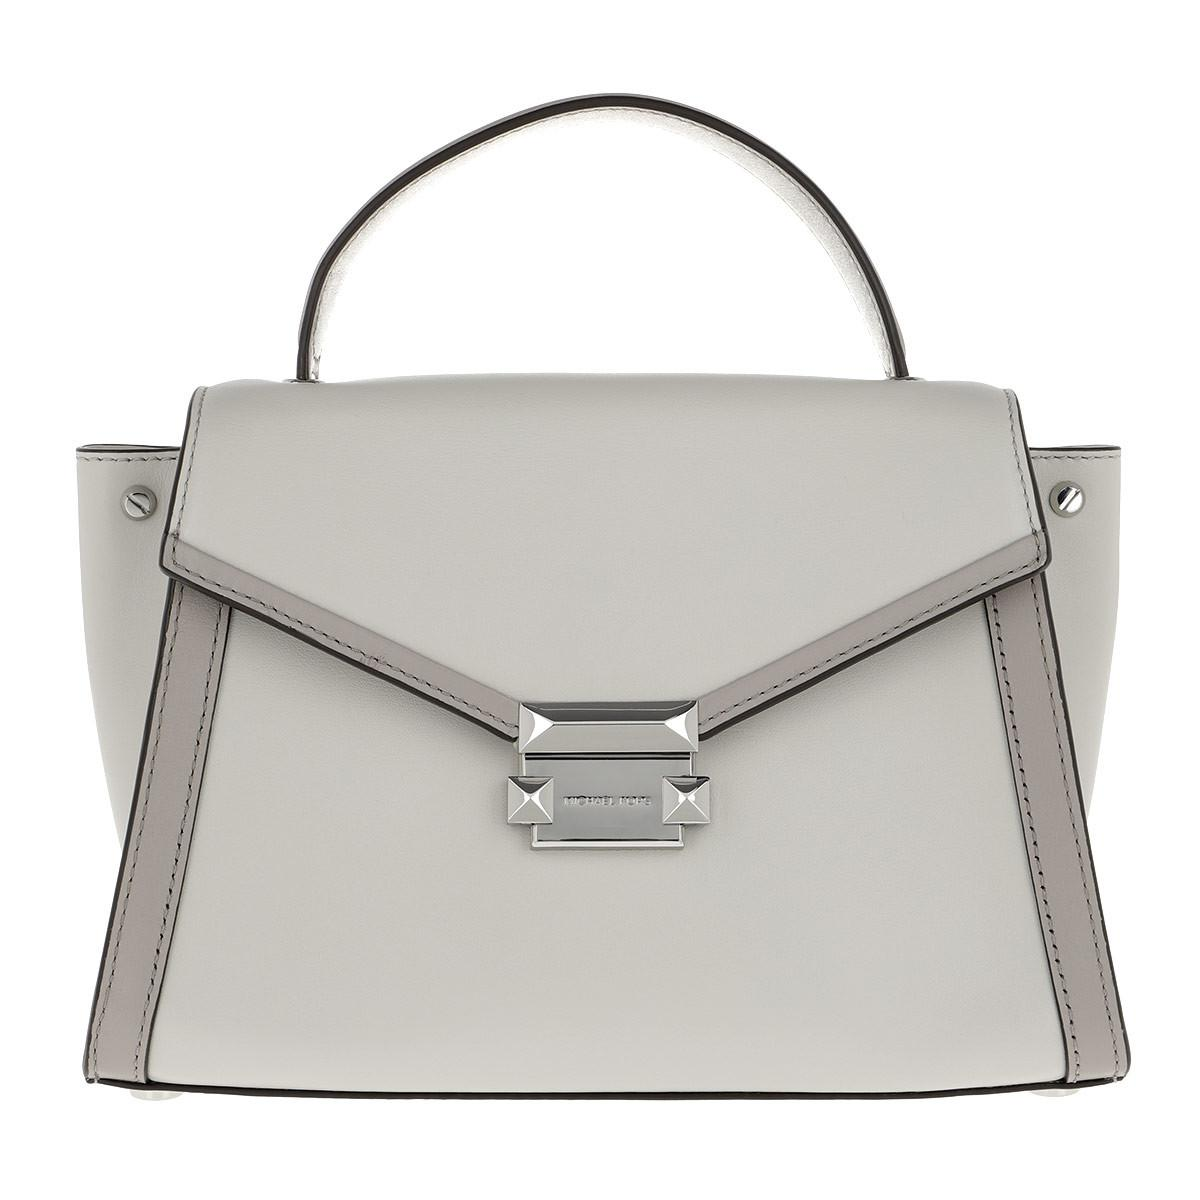 d77d485dd565eb Michael Kors Whitney Md Th Satchel Bag Alumin/prgry in Gray - Save ...